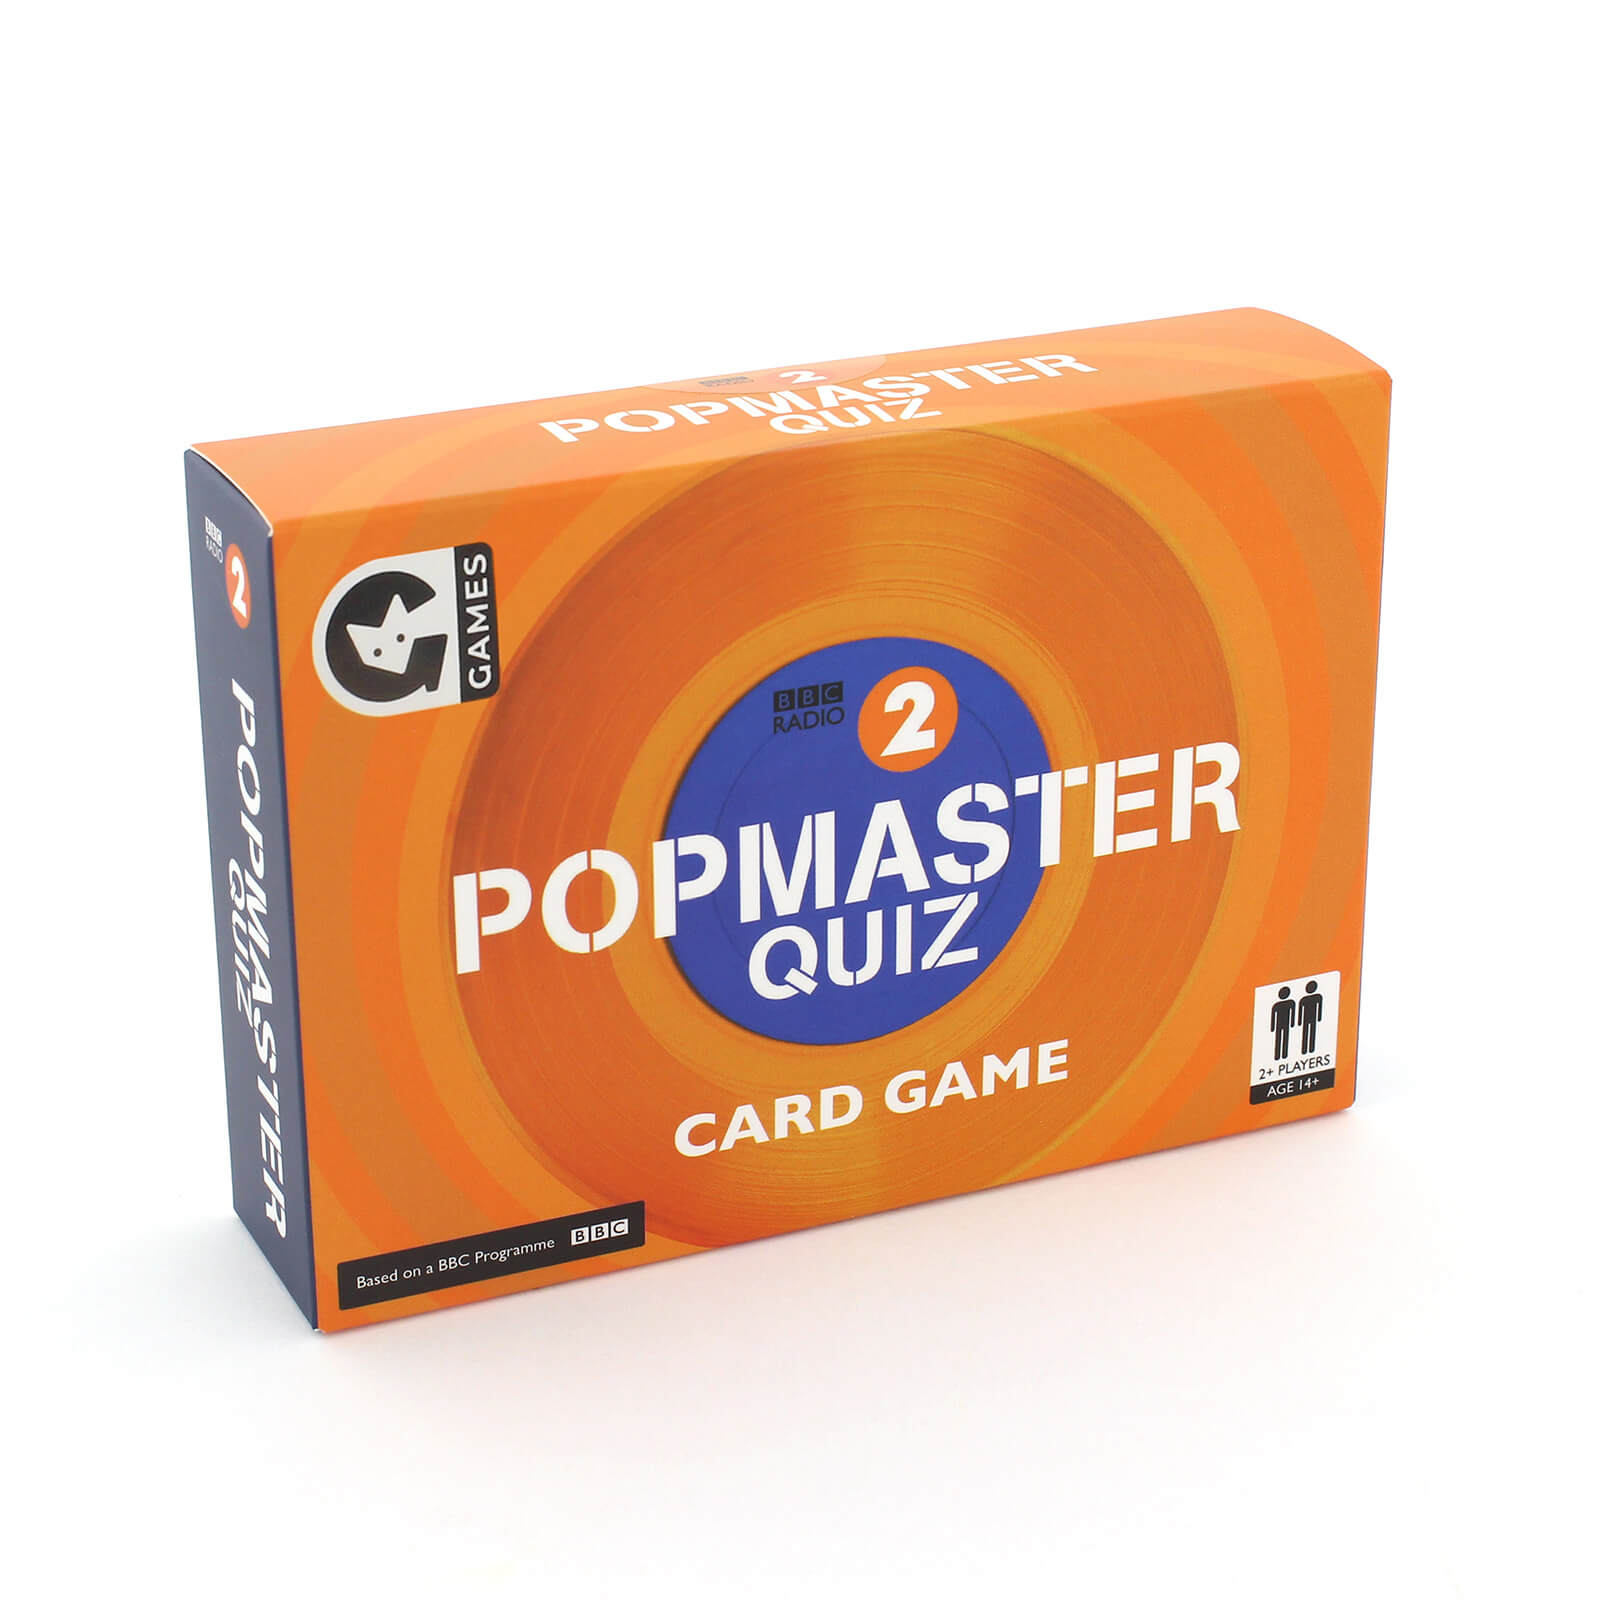 Image of Popmasters Card Game